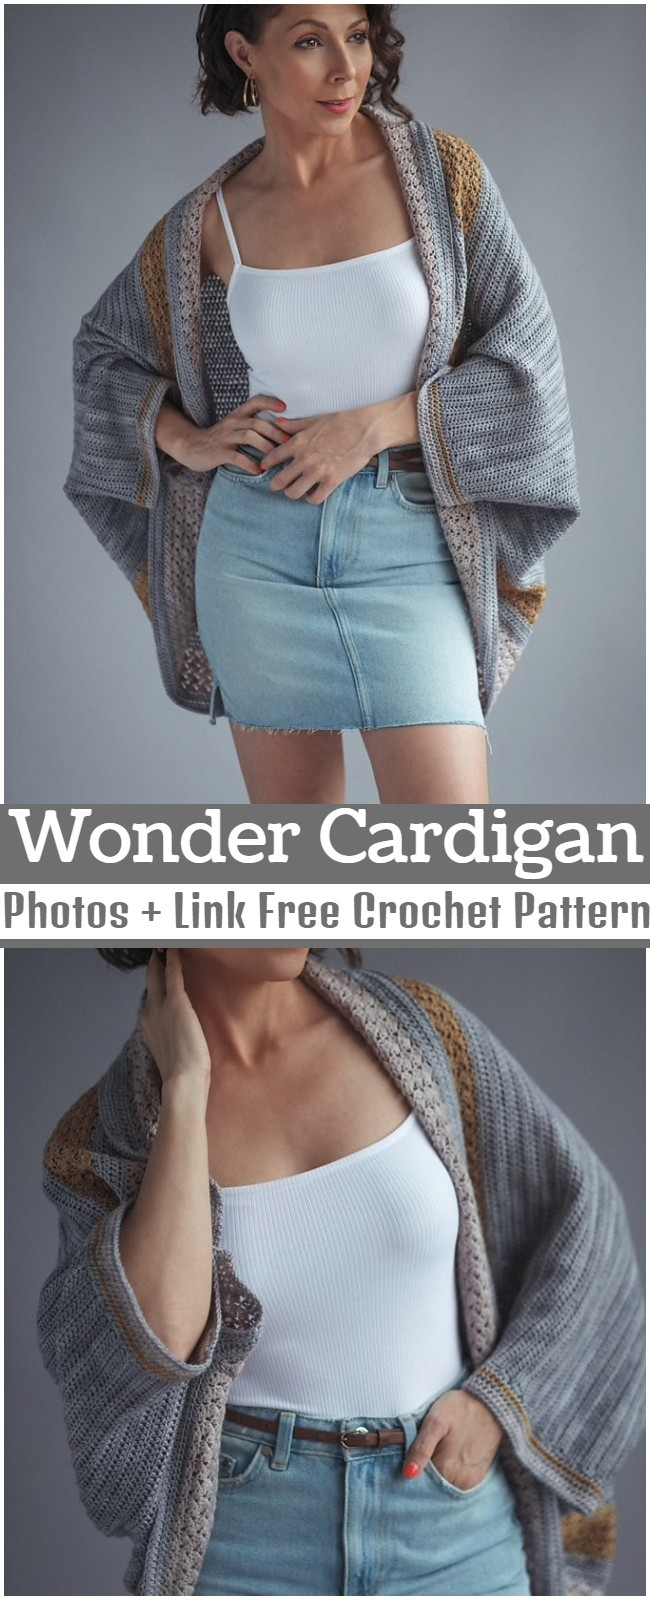 Crochet Wonder Cardigan Pattern